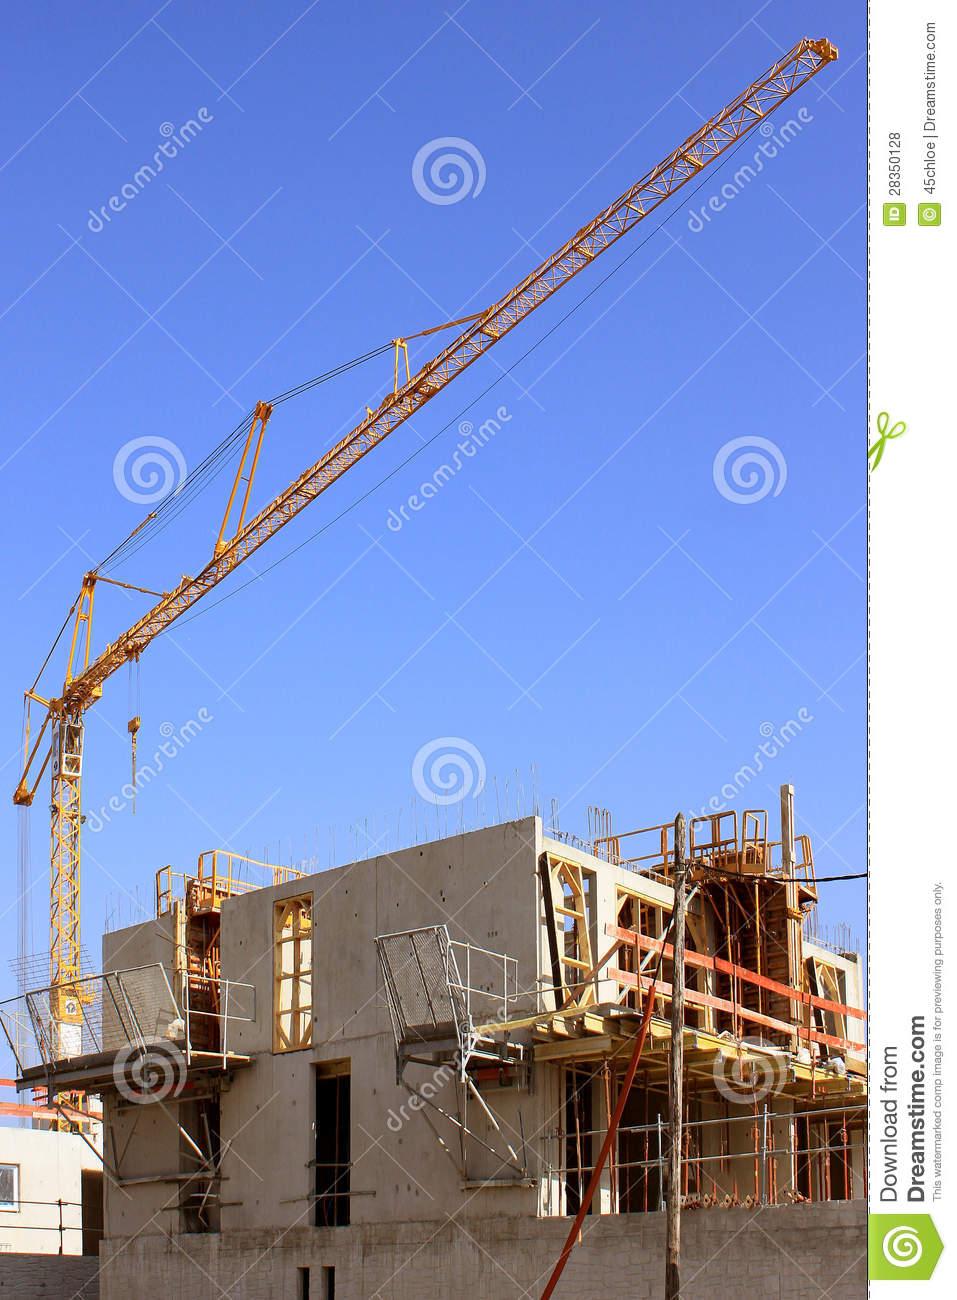 Building Construction Business : Building industry royalty free stock photos image